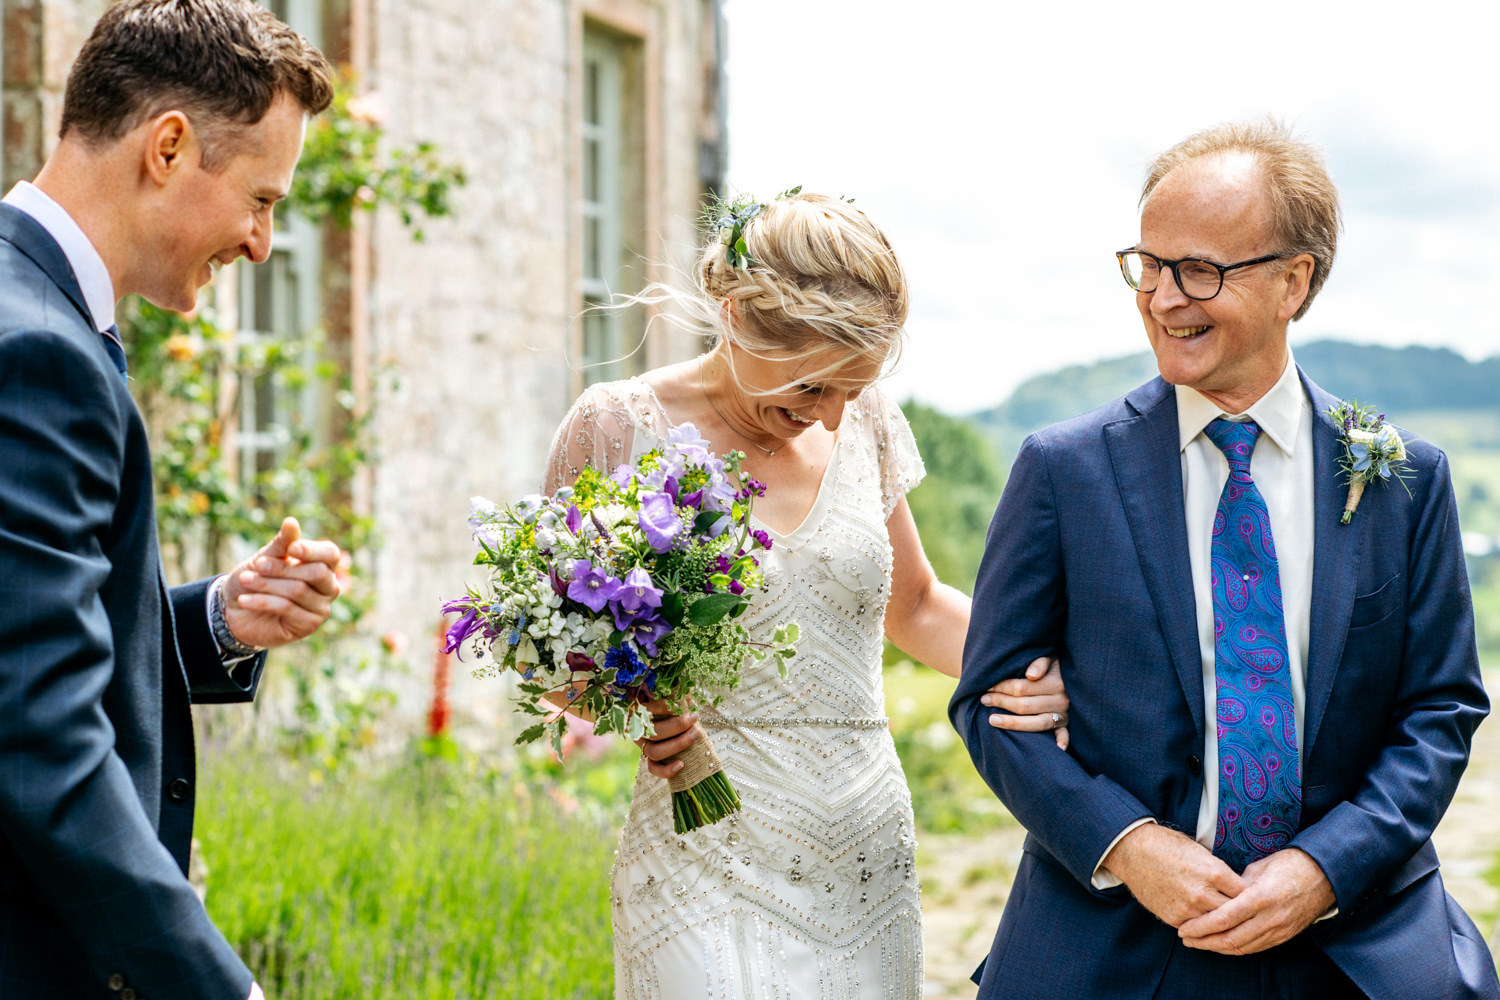 Outdoor Wedding Ceremony at Hatch House